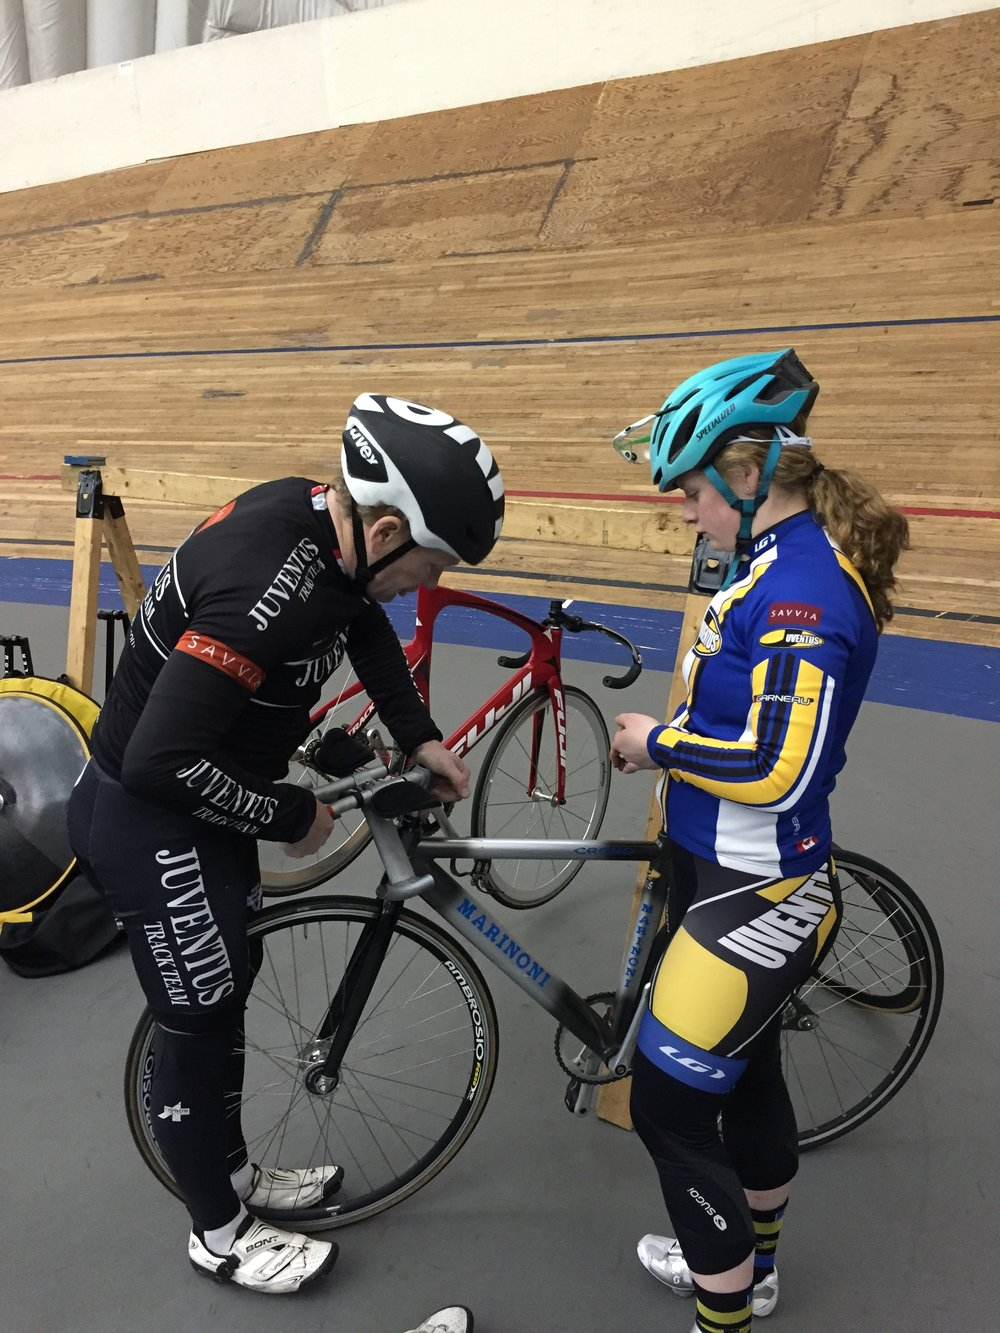 Dave assists Ngaire with her aero-bars.